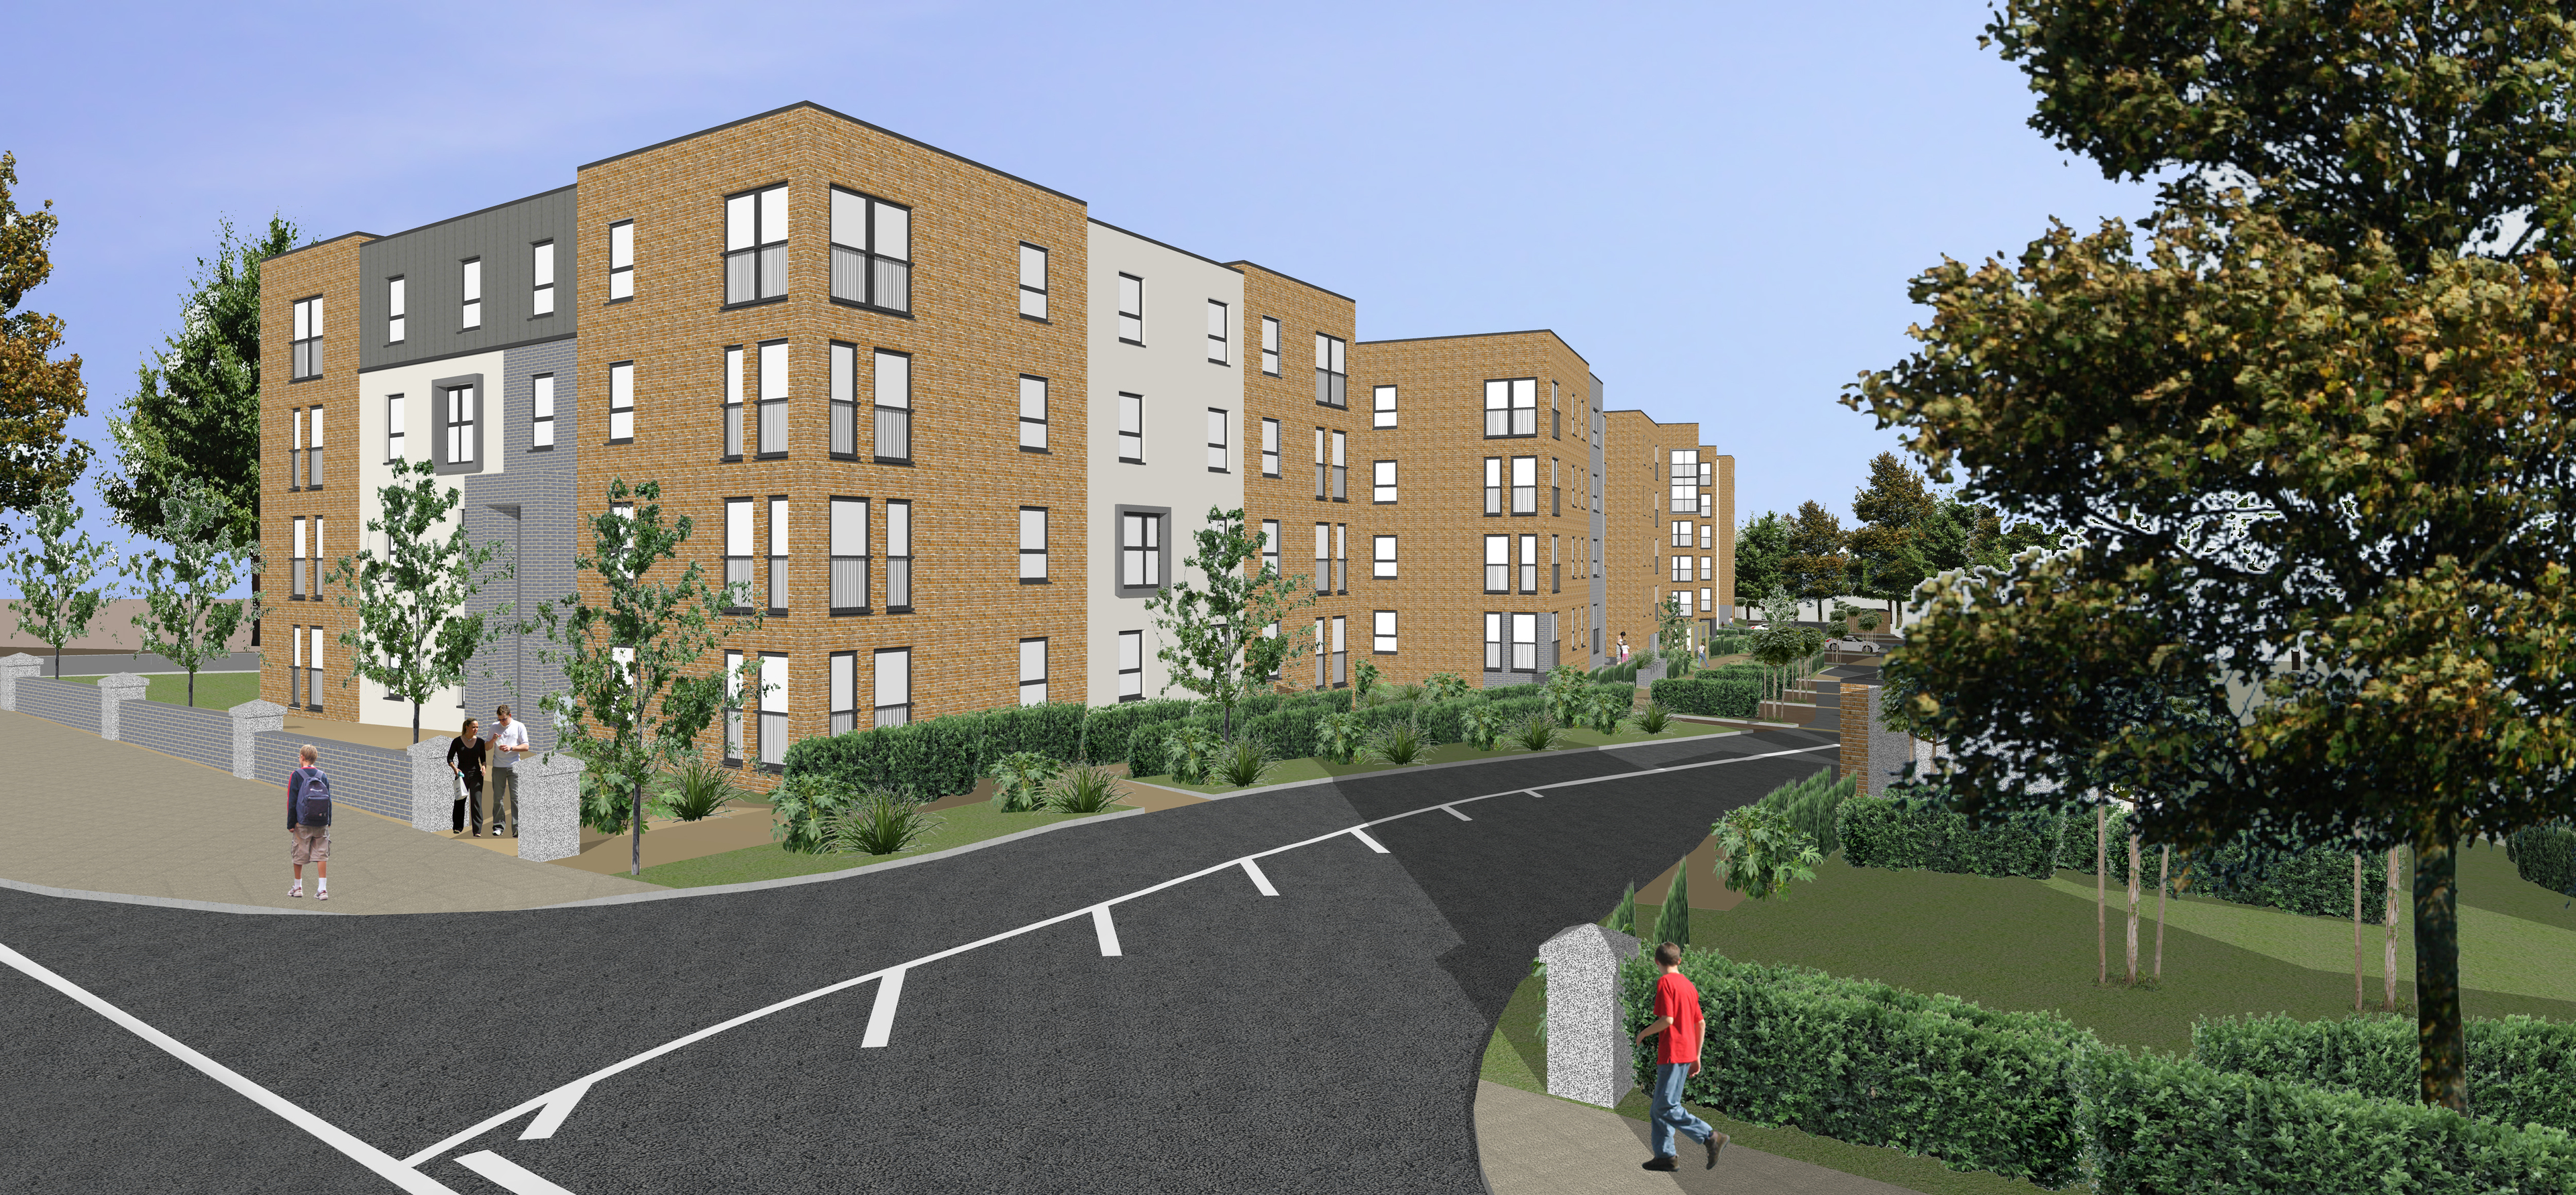 How the homes could look on Abbotswell Road